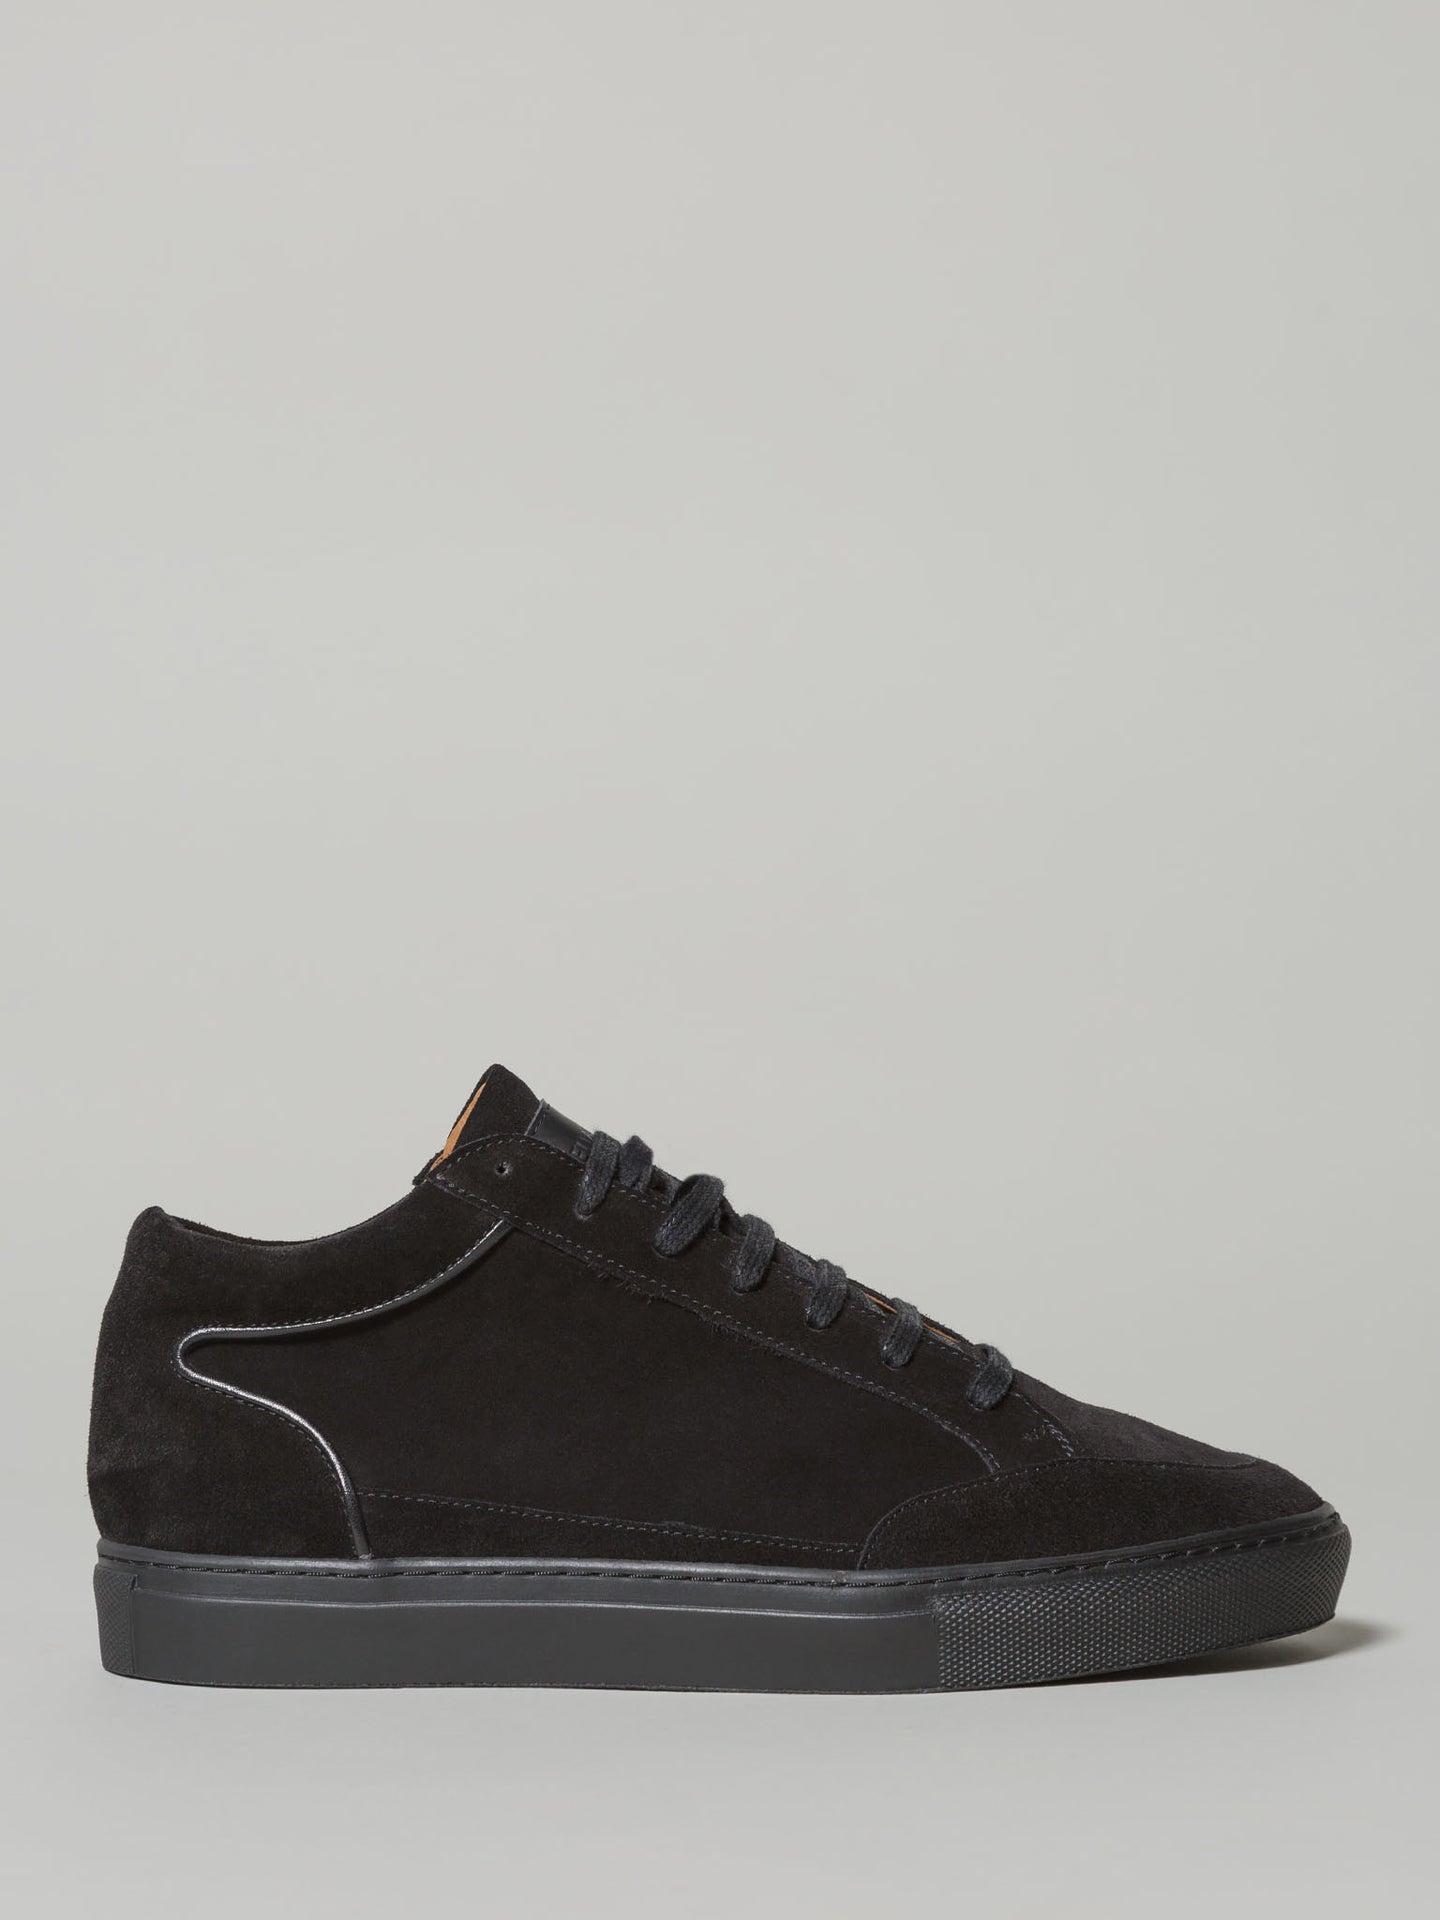 Twelvesons Ultra Mid Samo (Black Suede) - Union 22